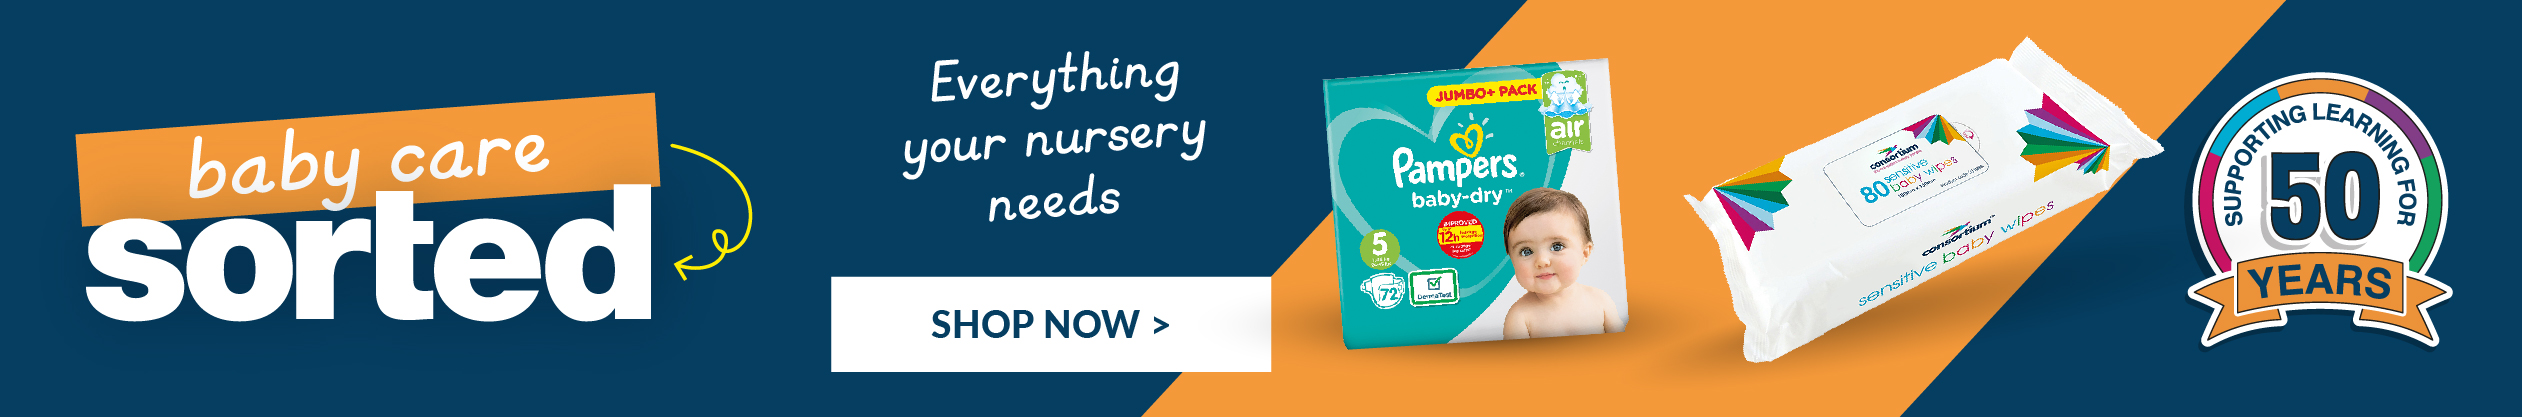 Discover our Early Years baby care range now. Shop Now